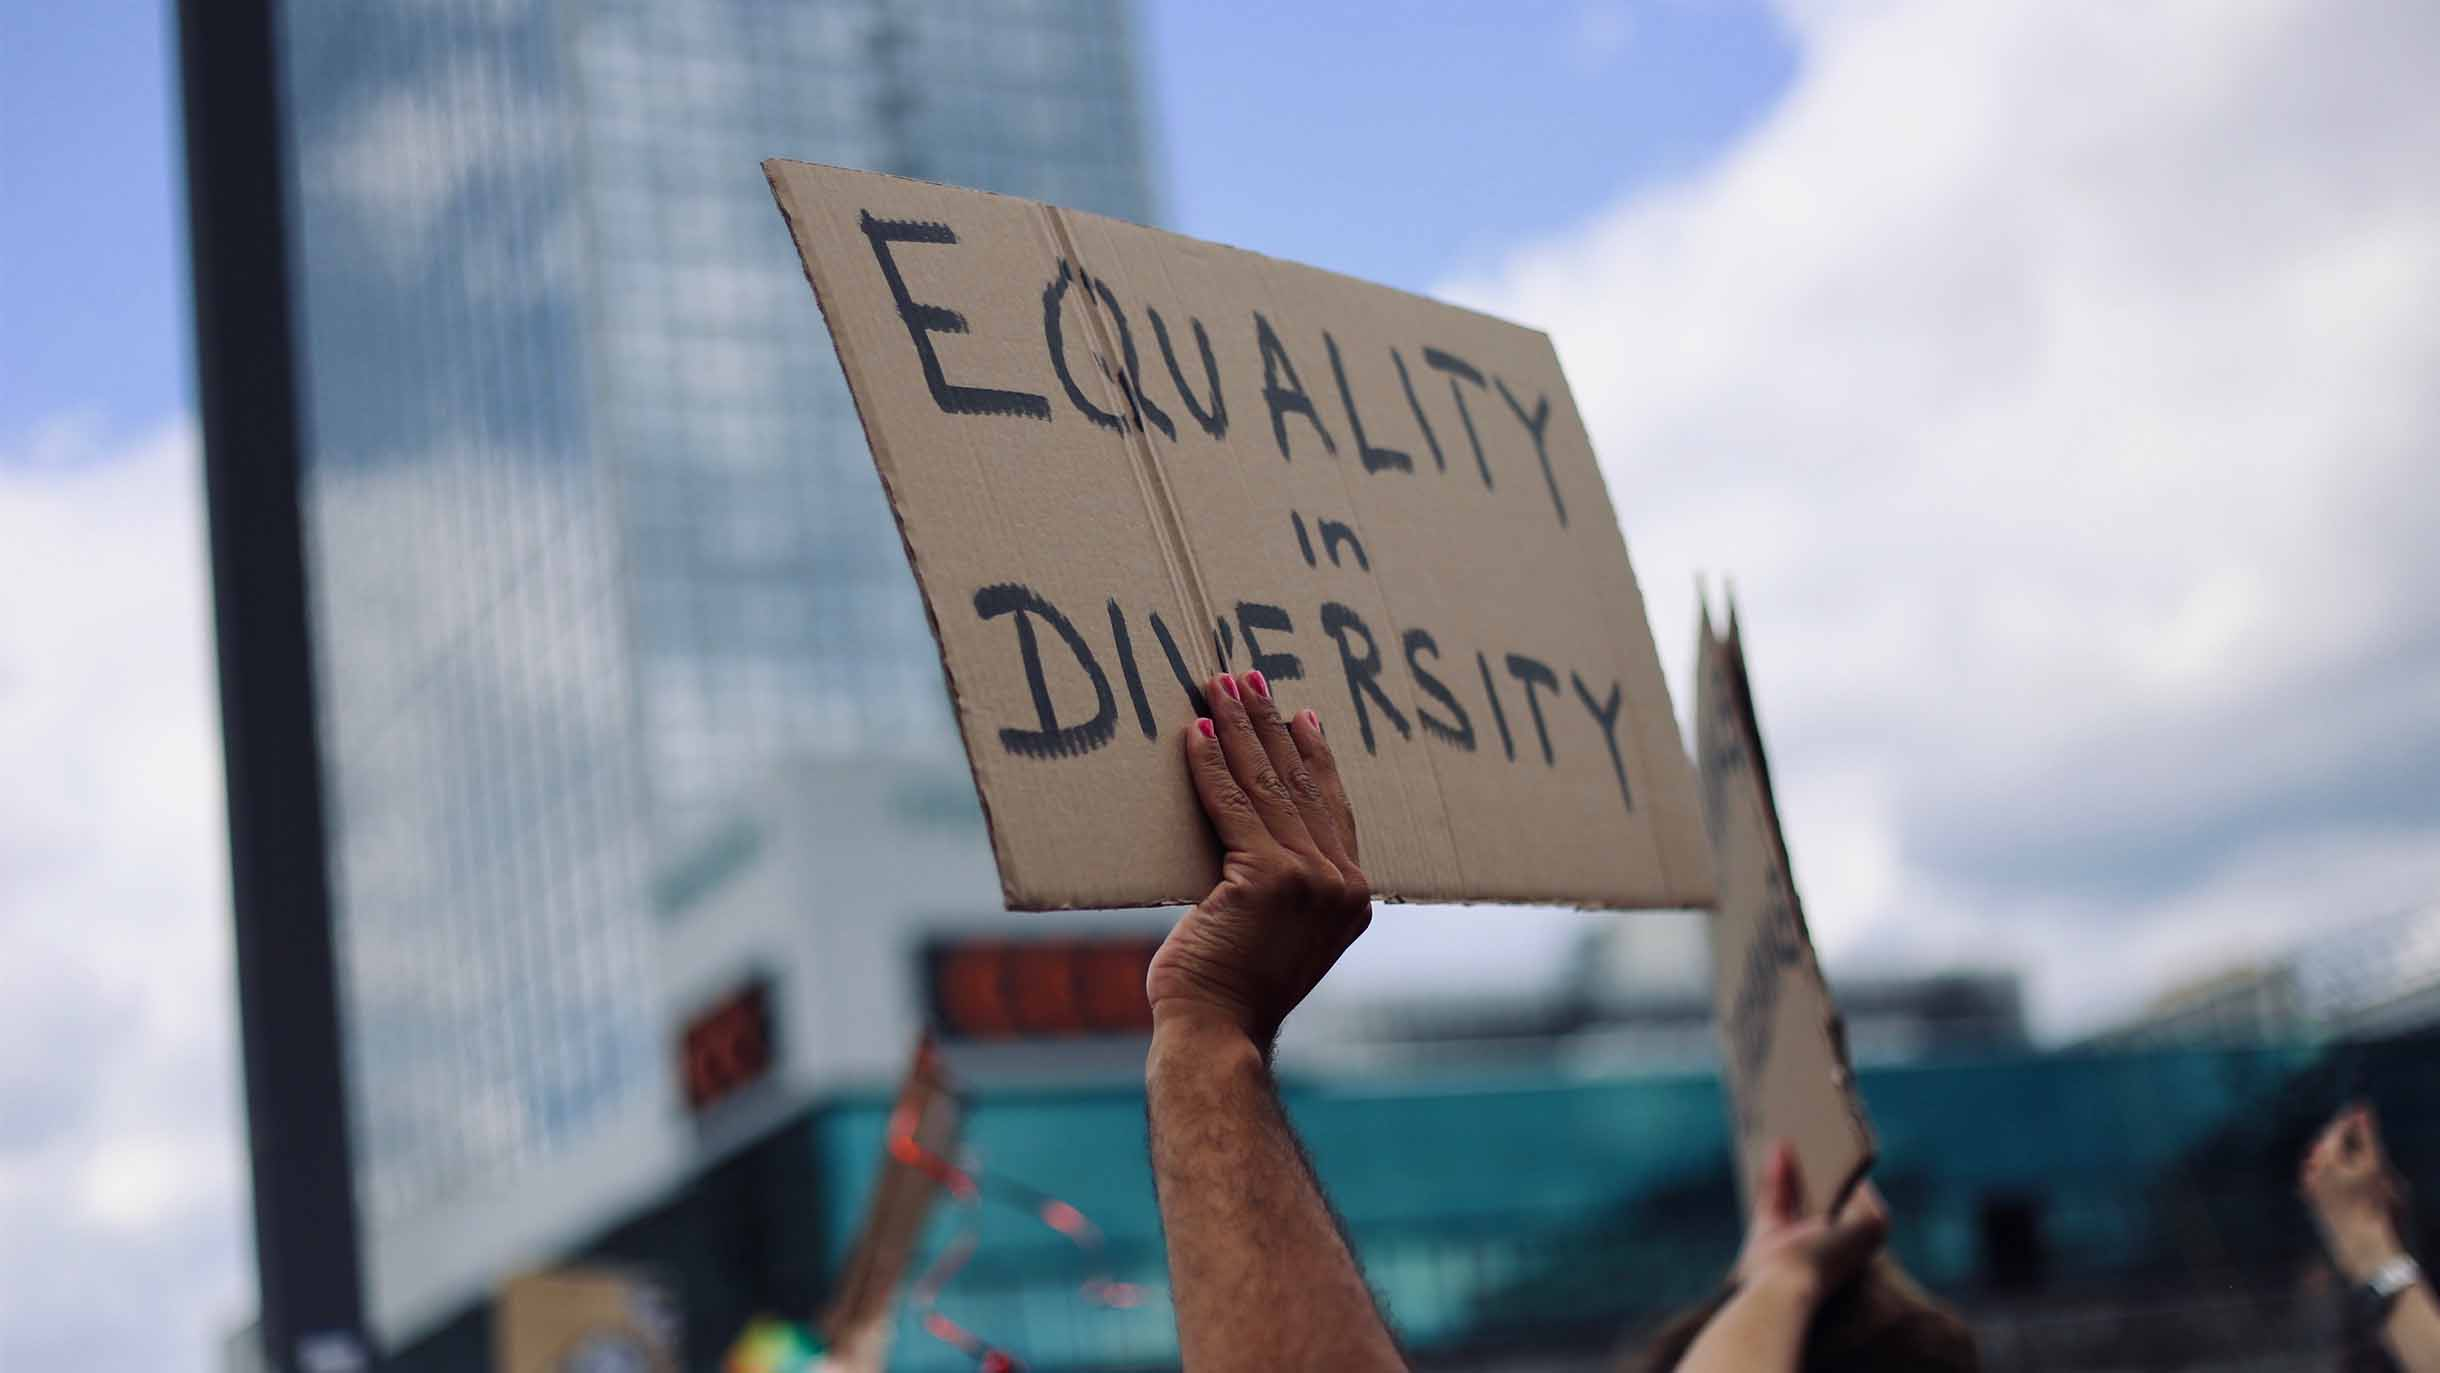 Championing diversity: where we are, and where we want to be...